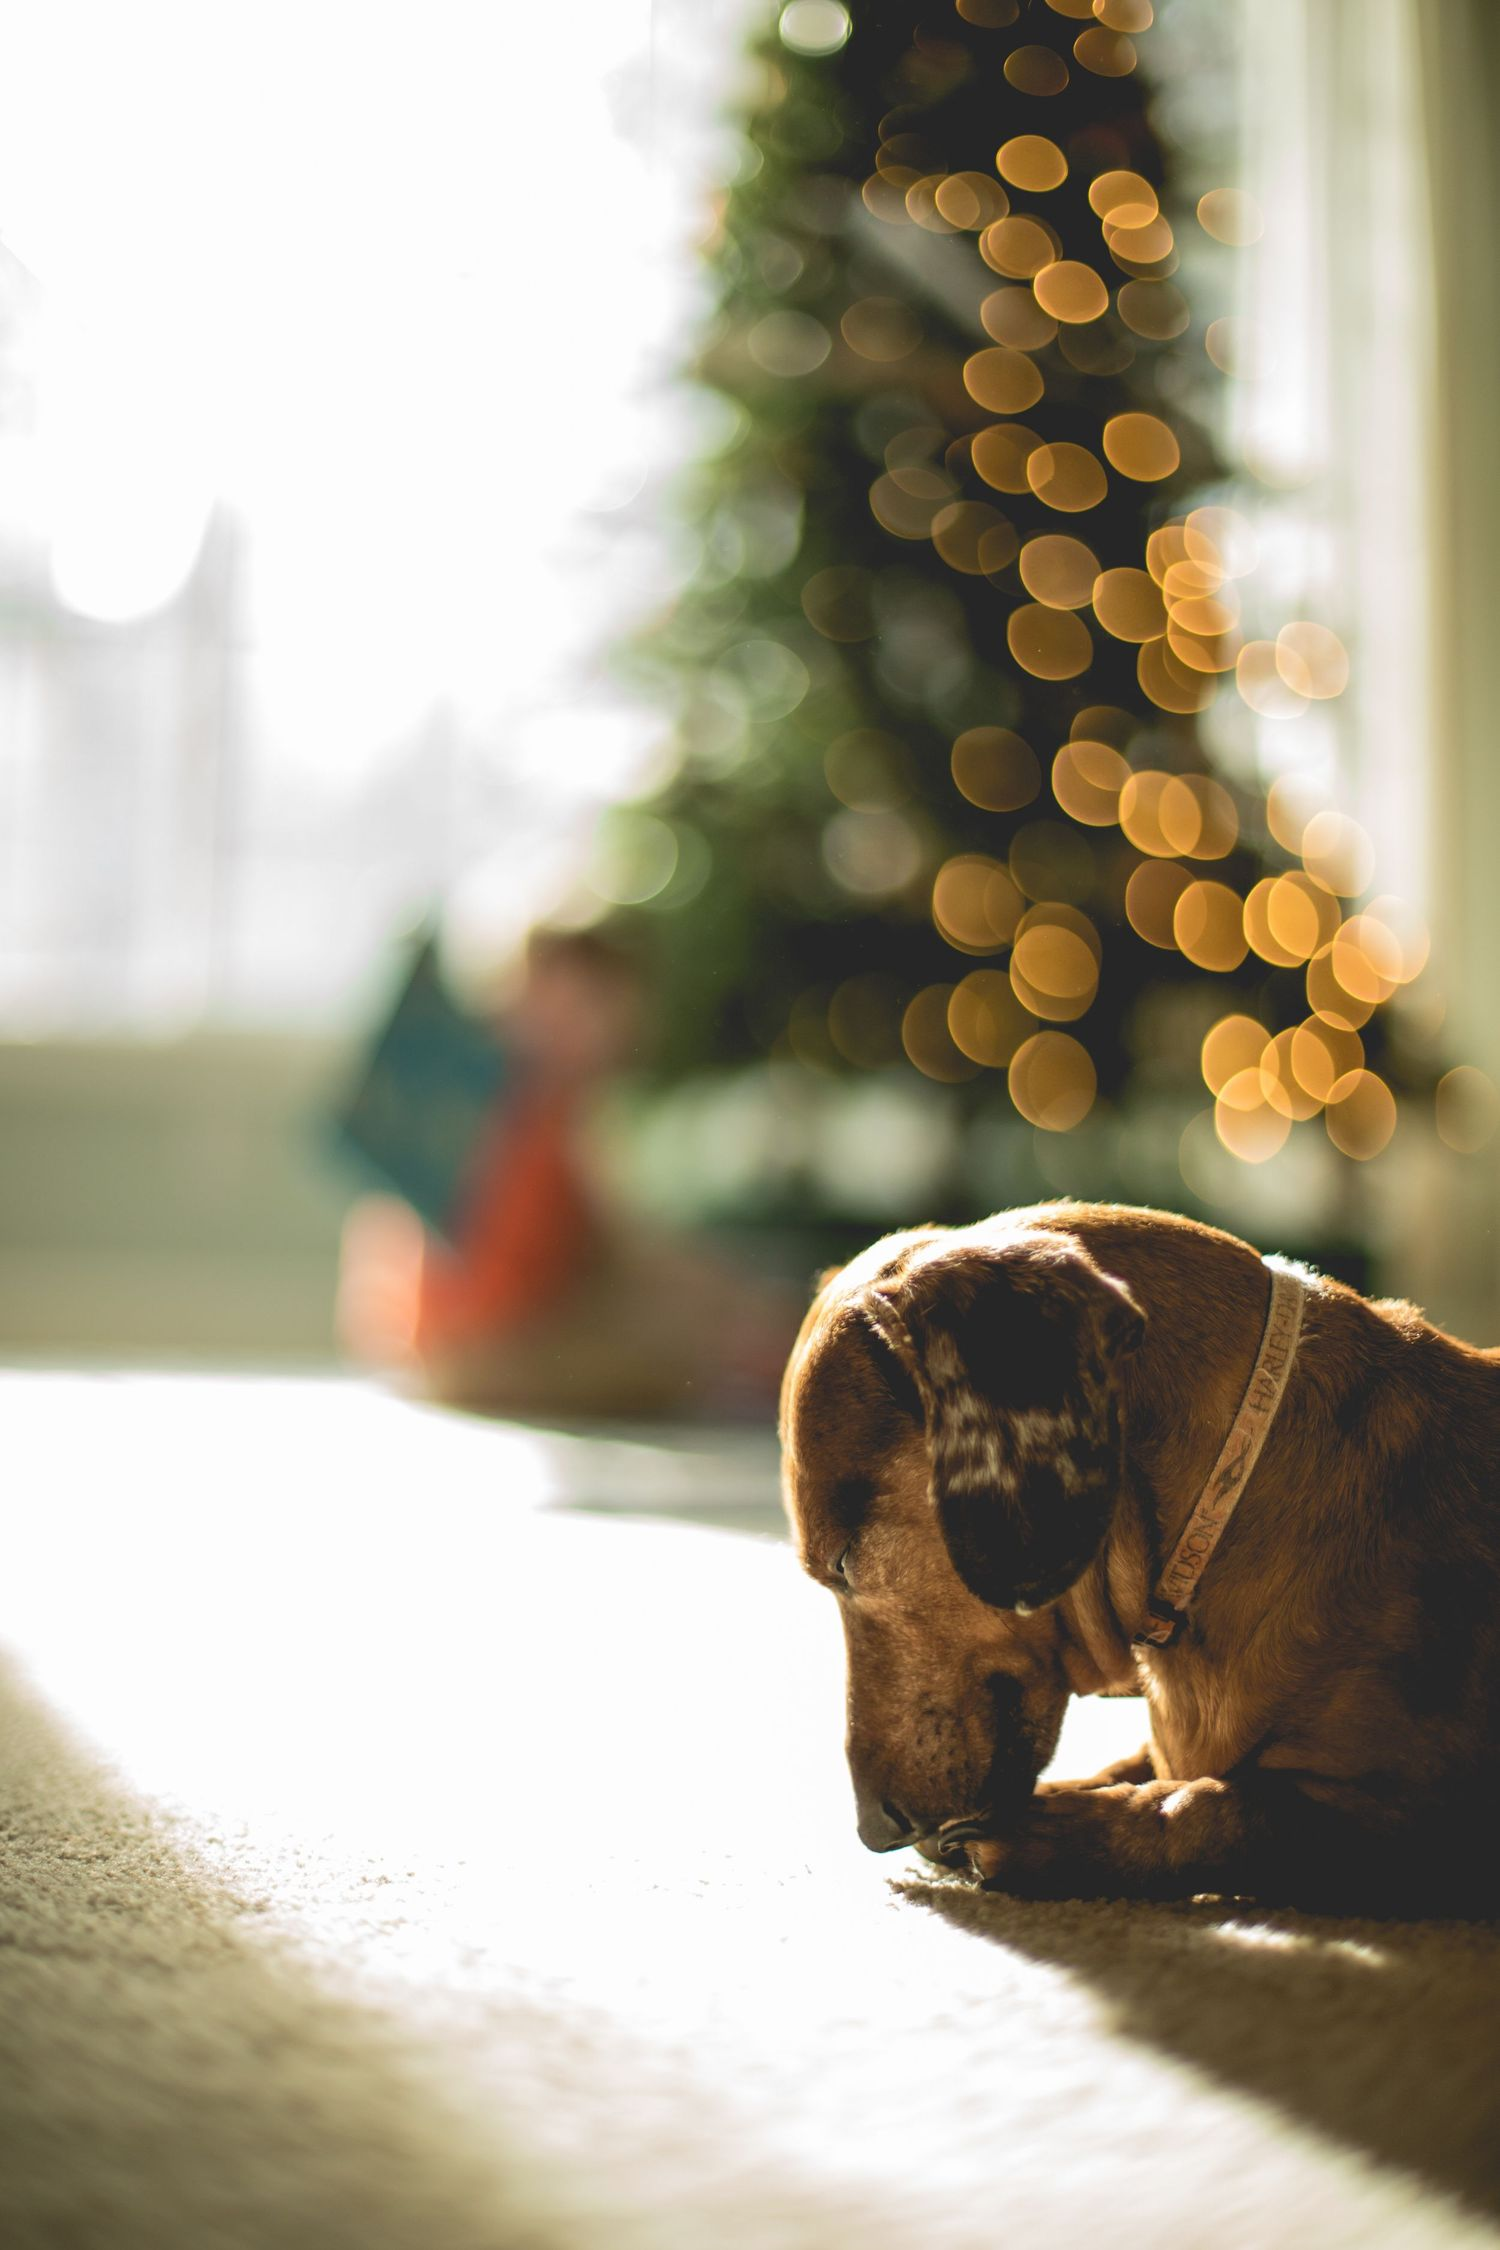 dachshund licking paws in front of Christmas tree